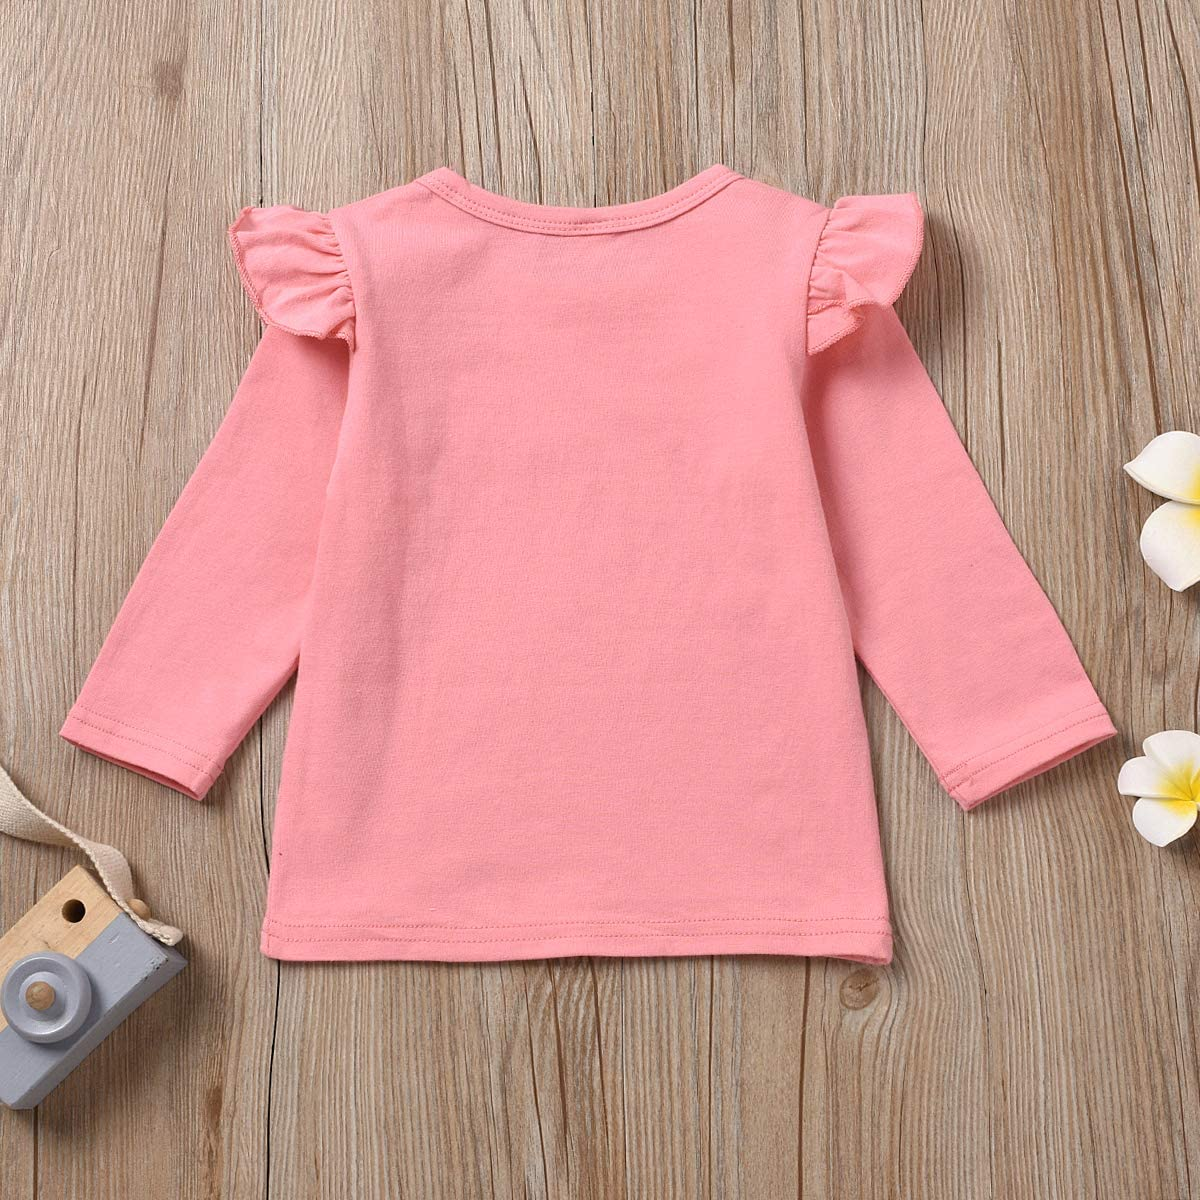 Toddler Girls T-Shirt Promoted to Big Sister Letters Print Kids Short Sleeve Tops